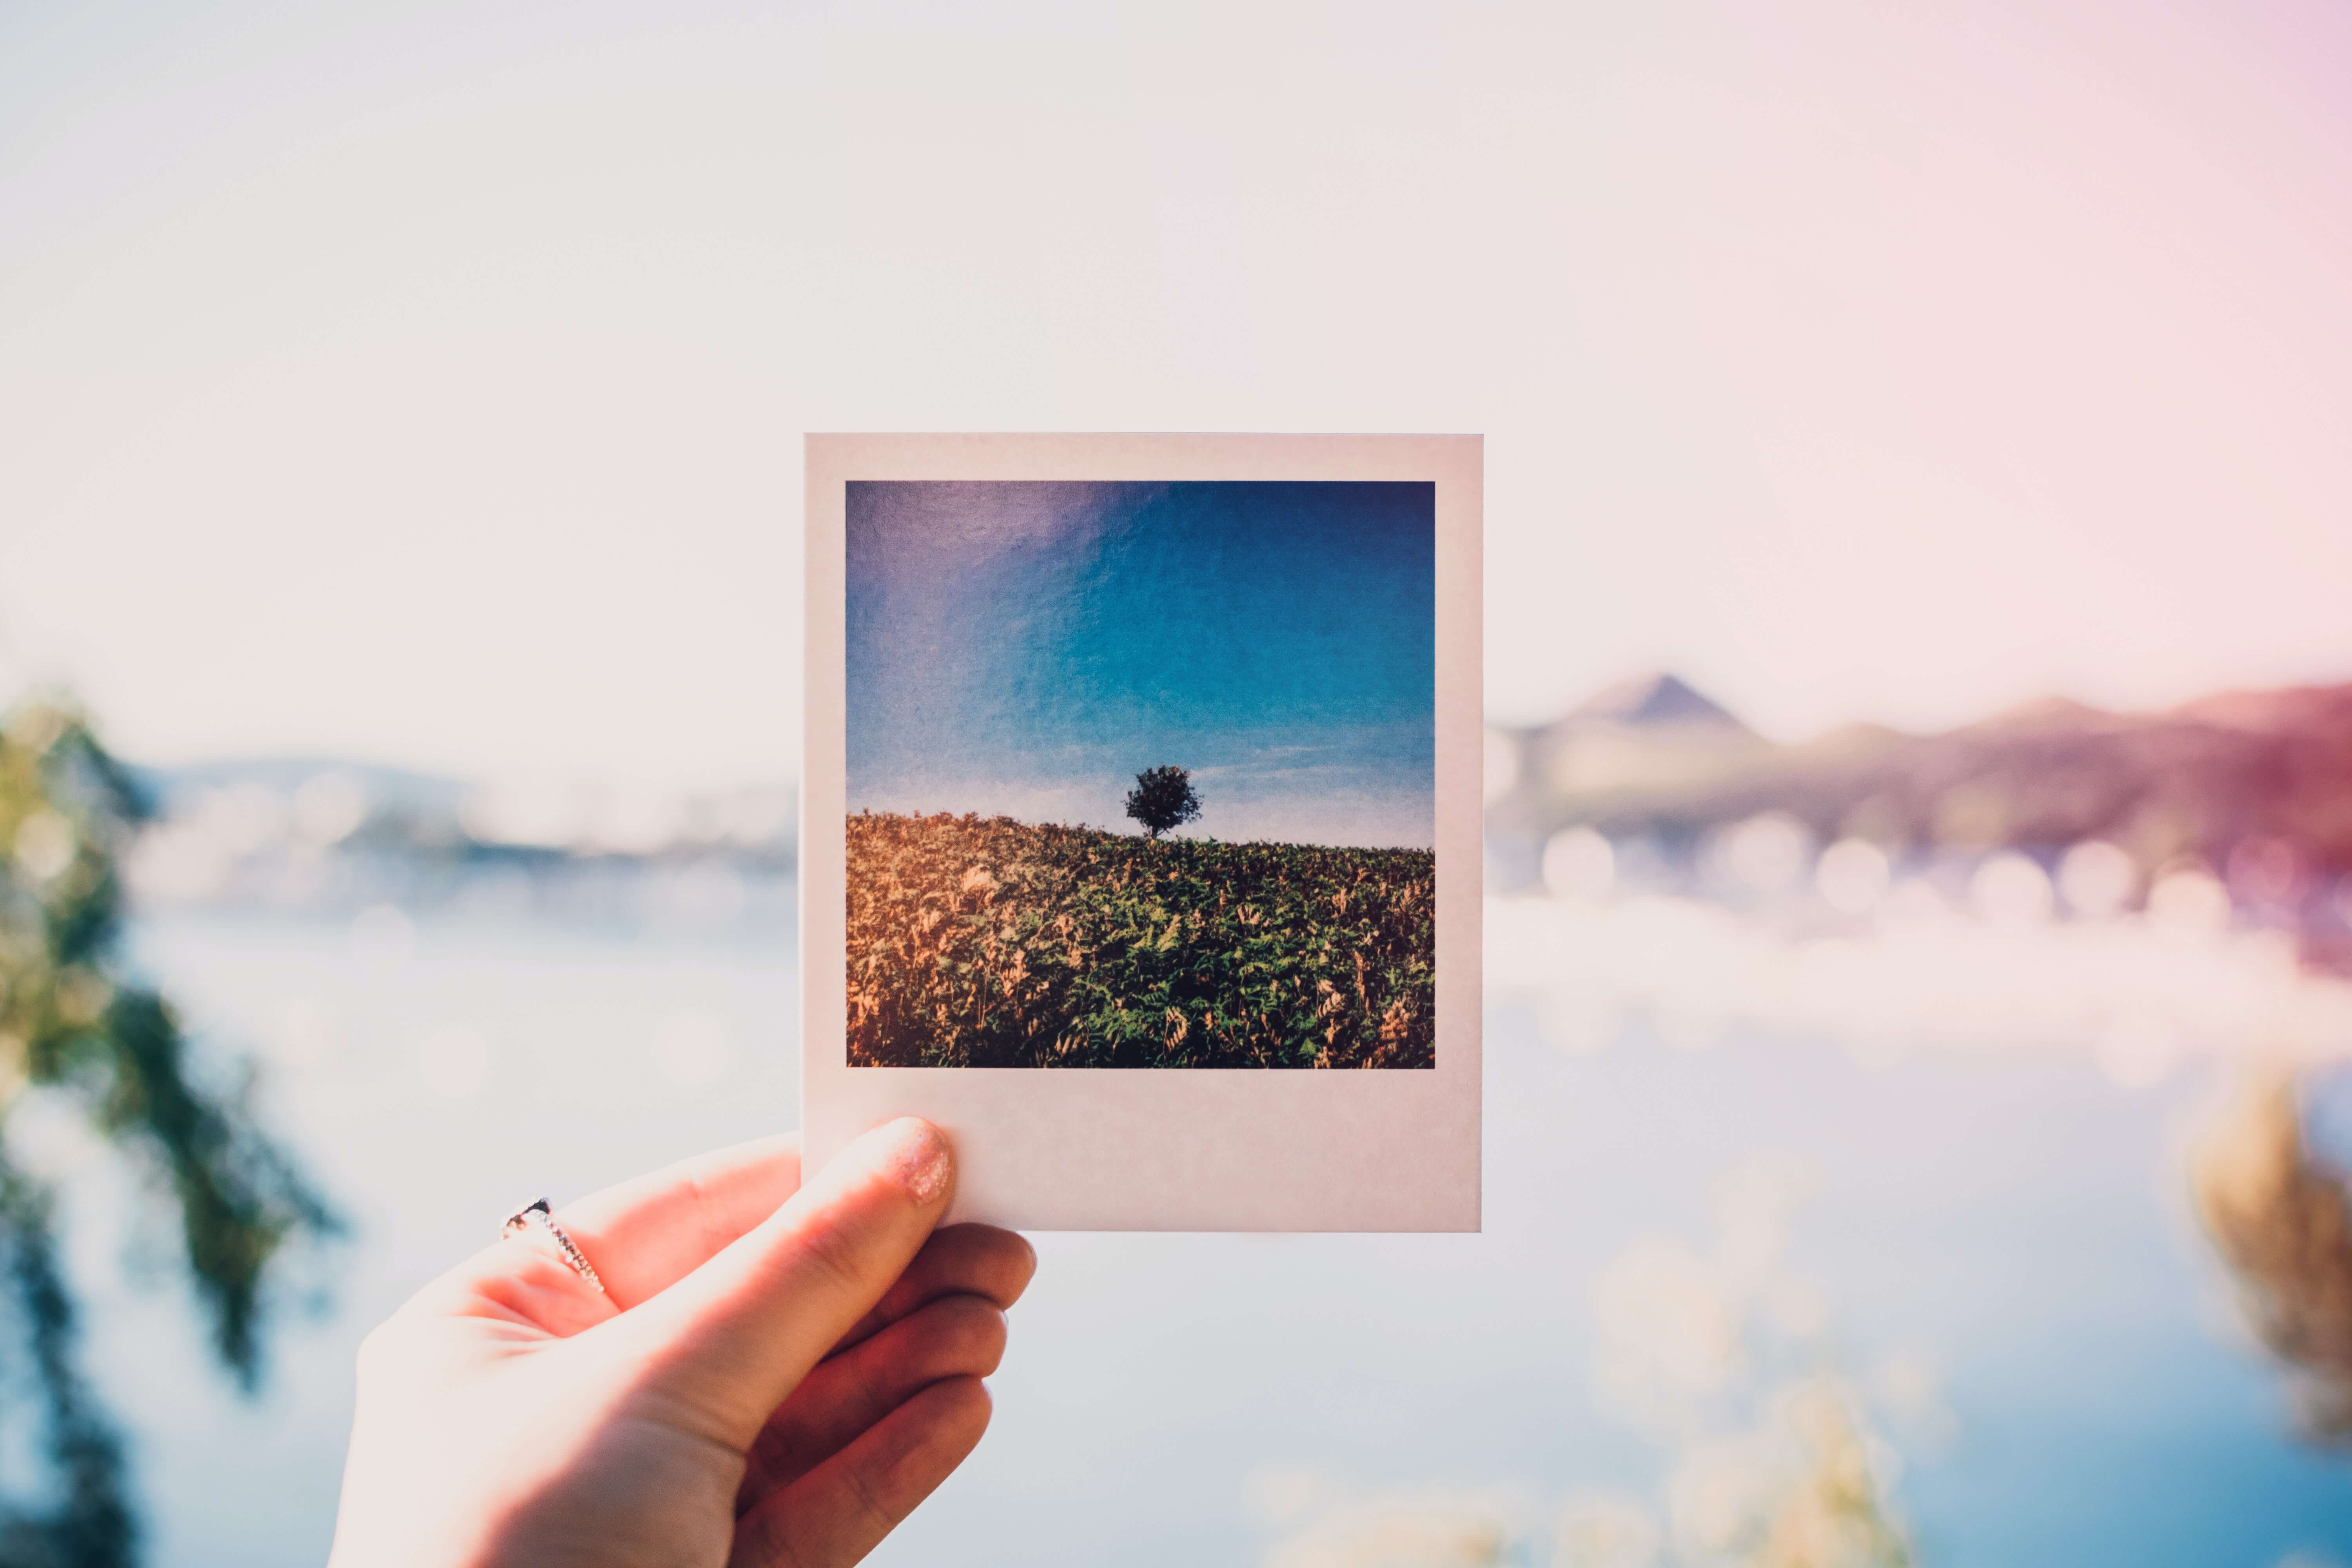 Use proper filters for your photos